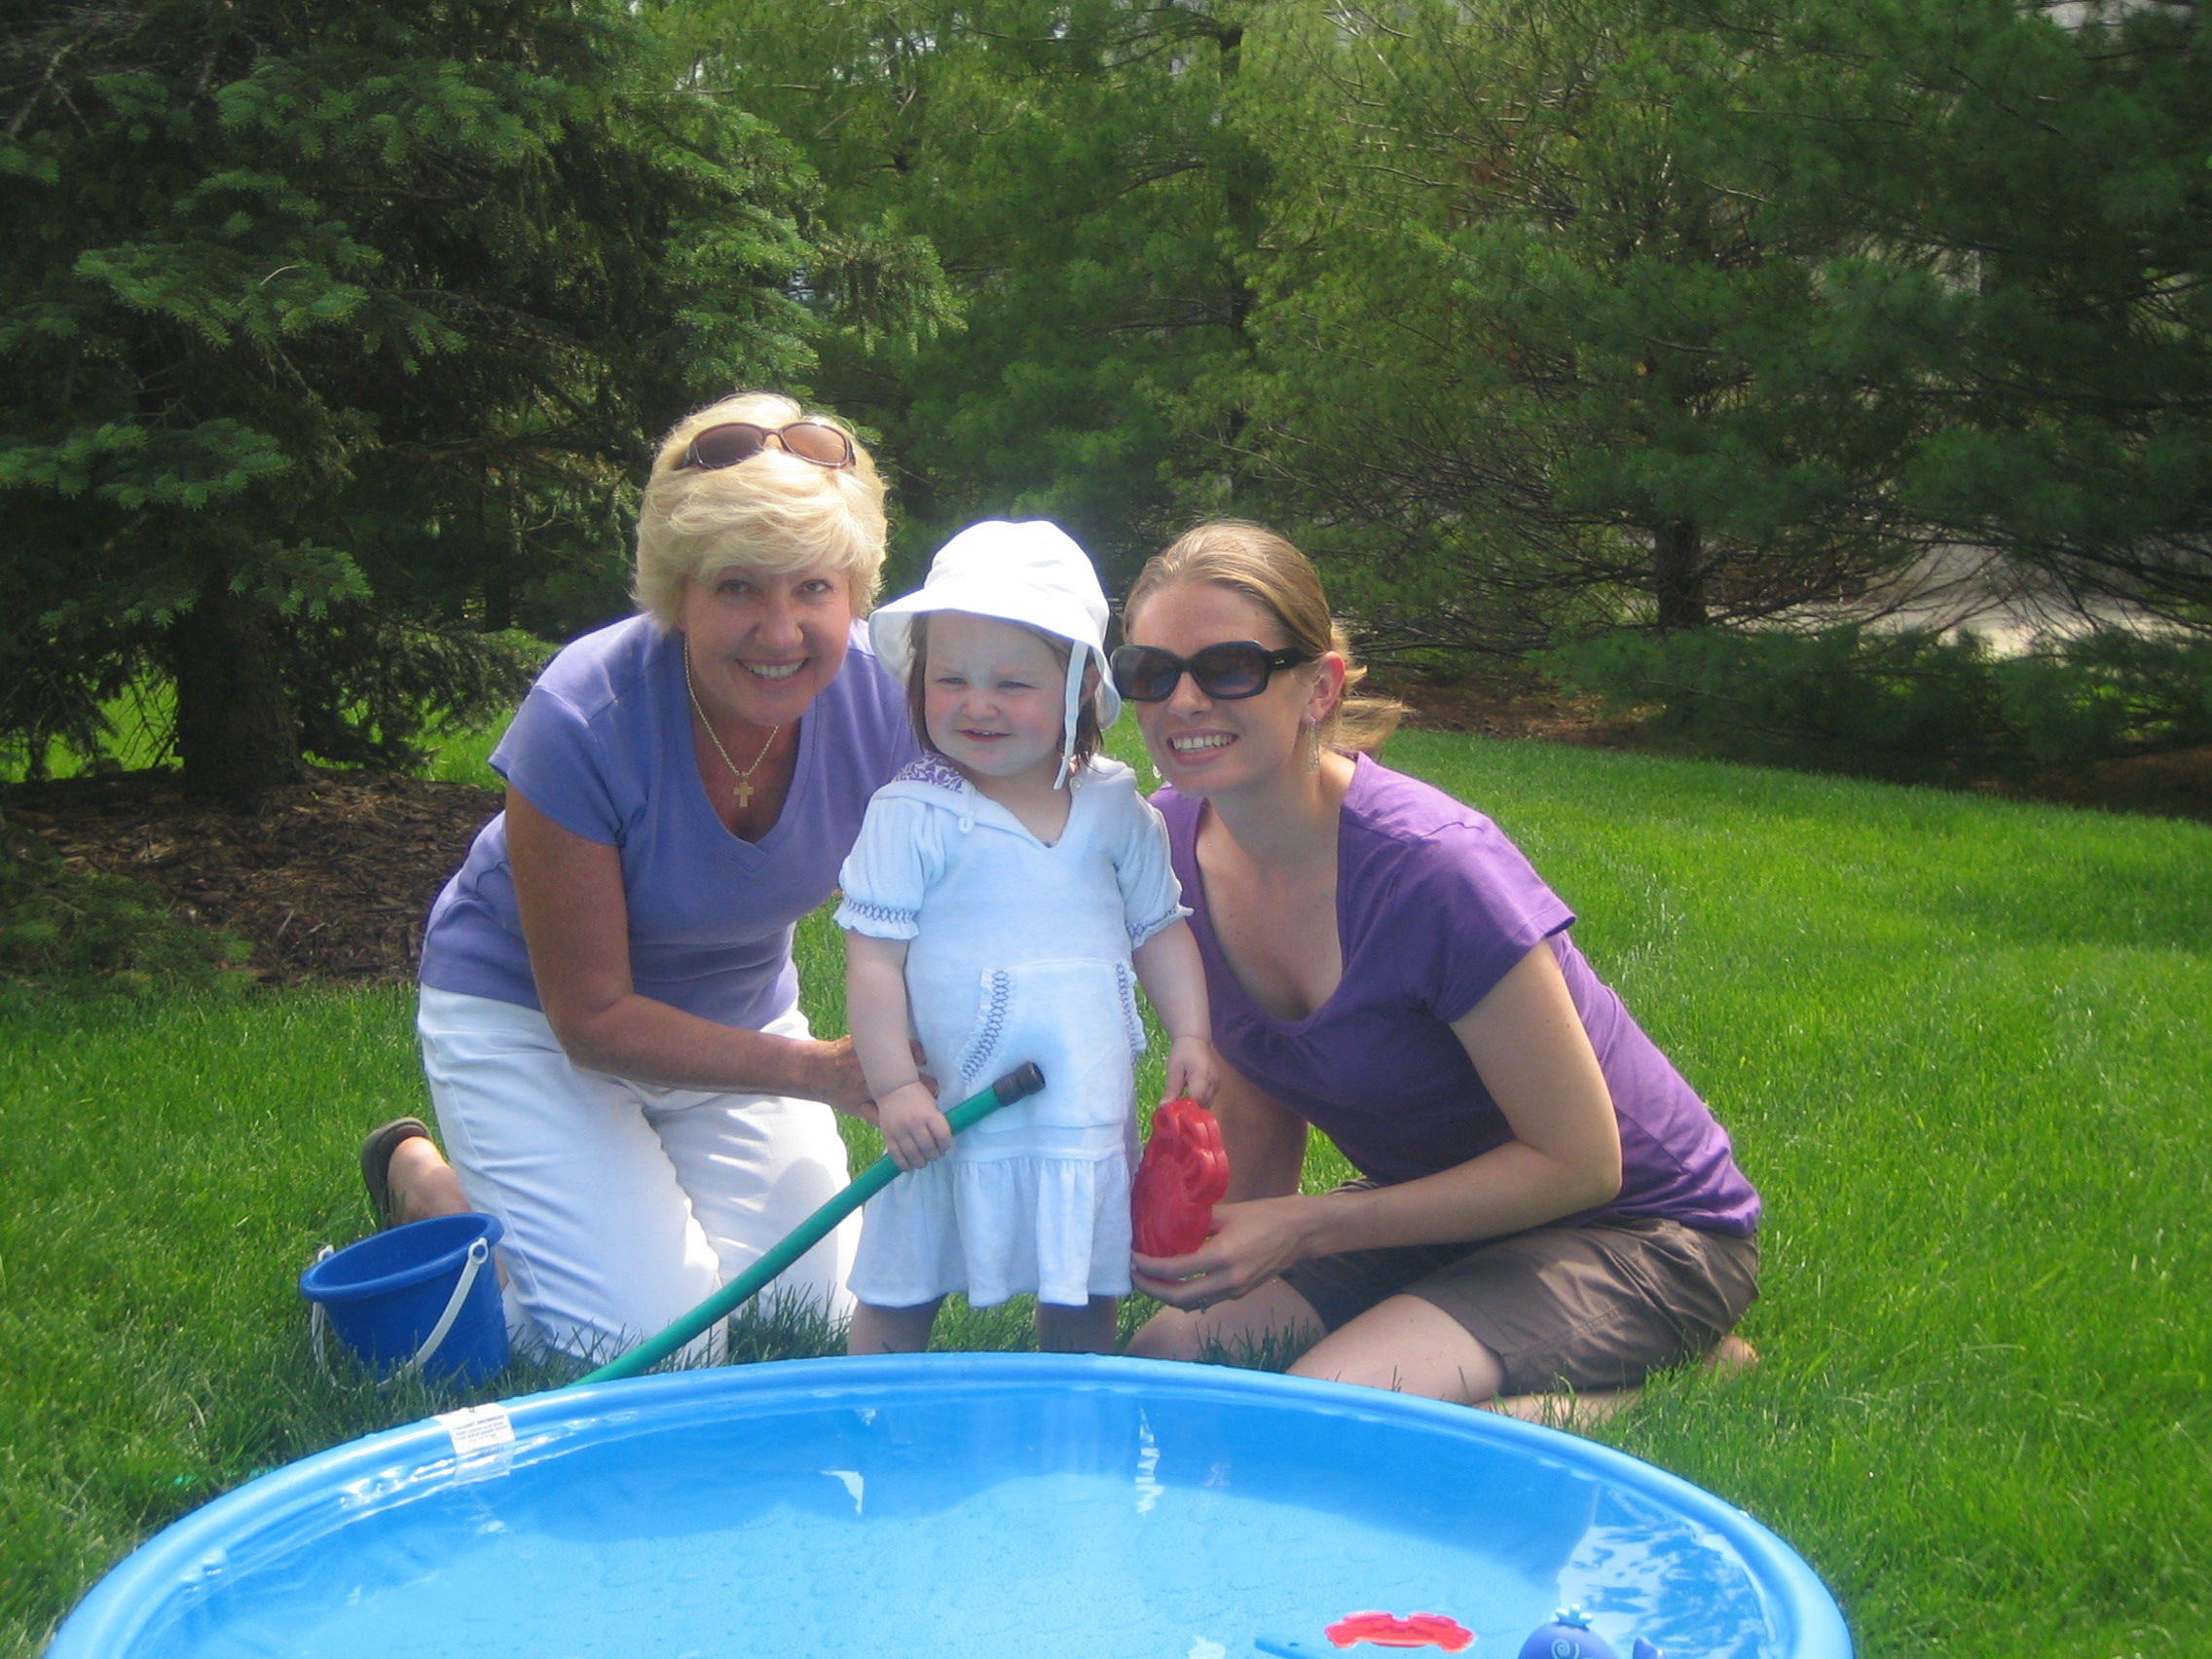 Gigi, Erika, and Linda fill the kiddie pool.